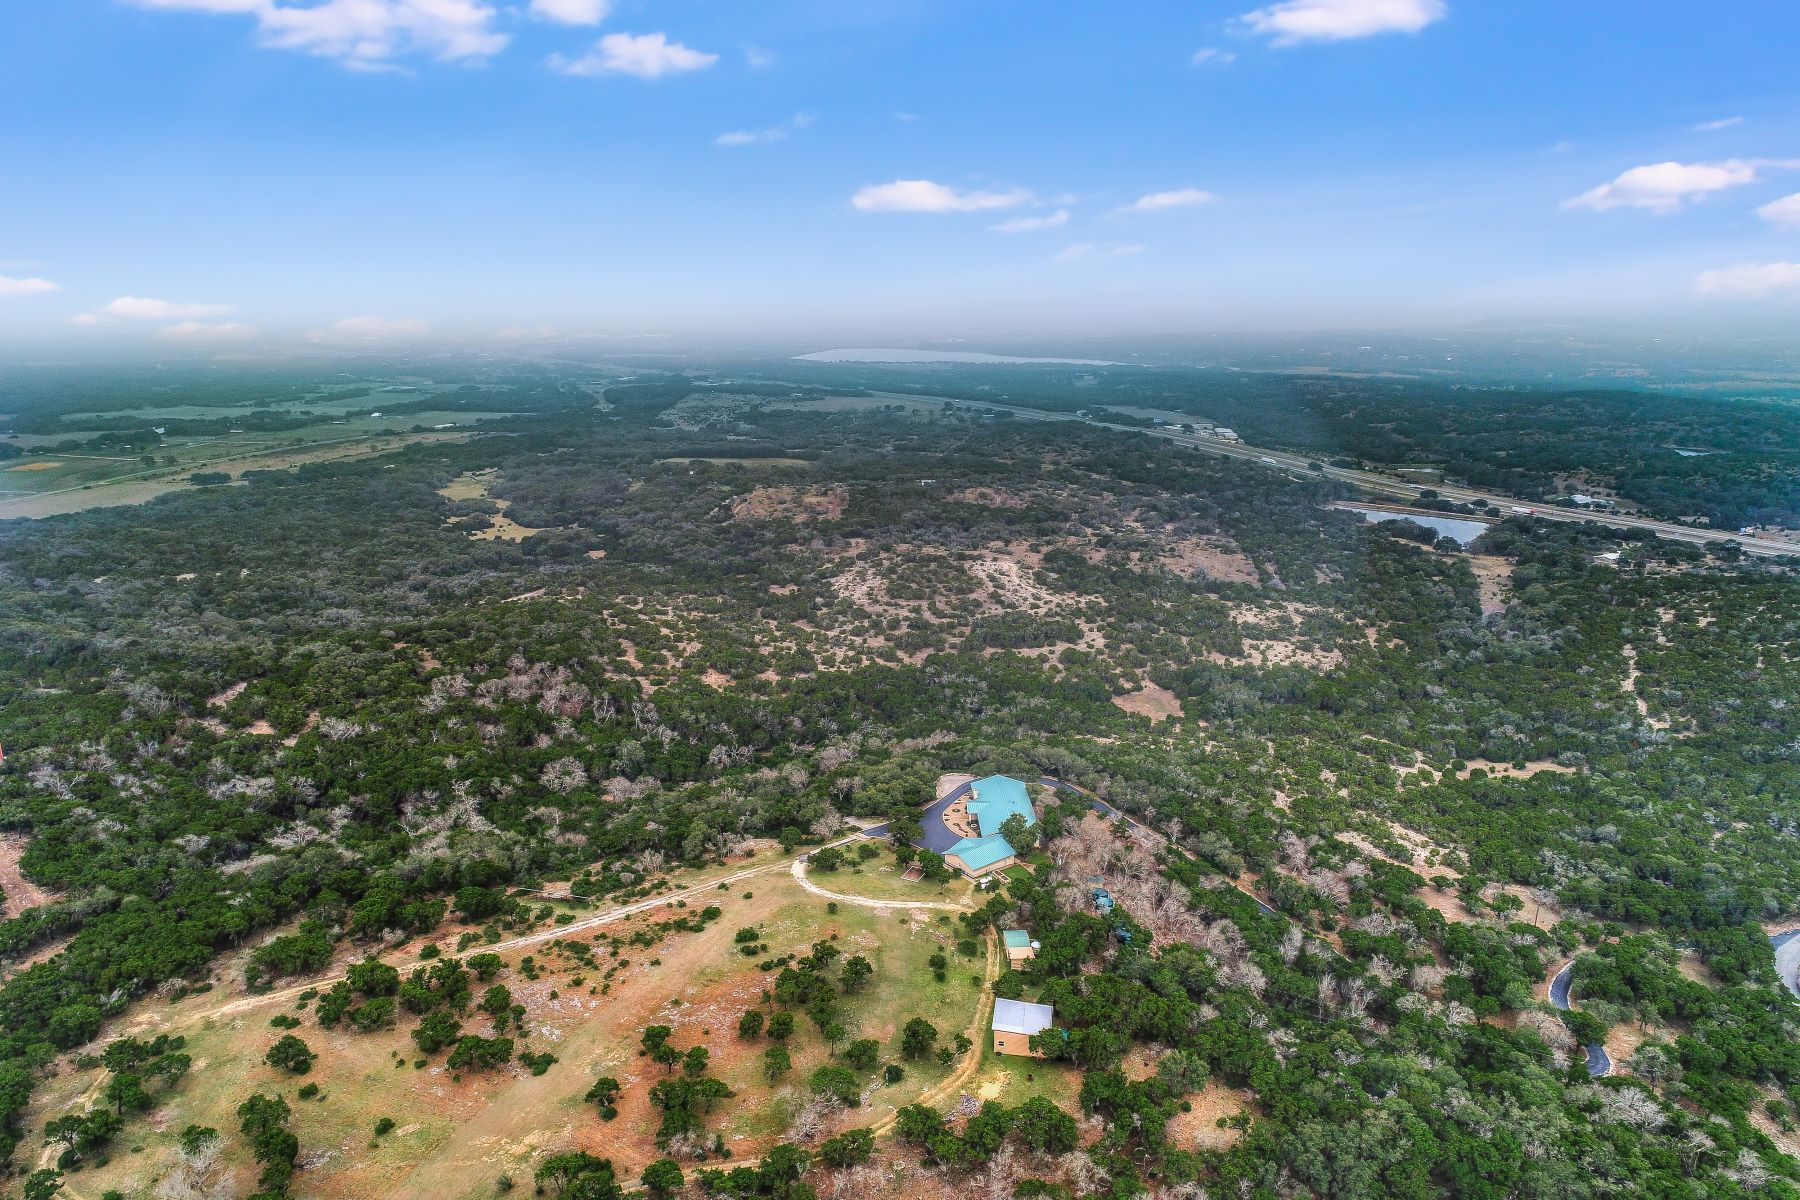 Property for Sale at Extraordinary Hilltop Oasis in Boerne 33 Tower Rd Boerne, Texas 78006 United States